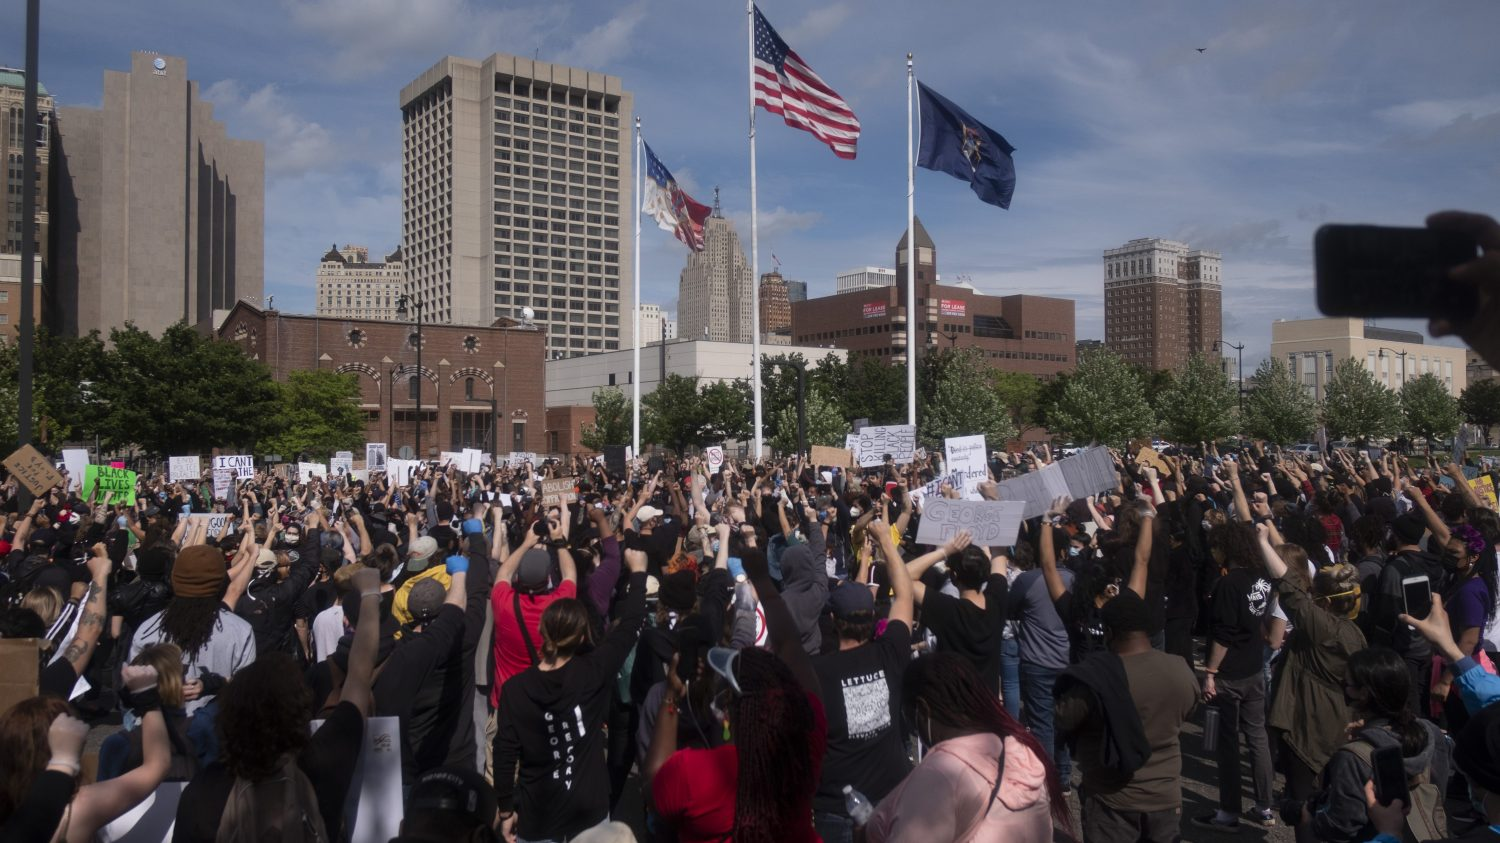 Feds Say Agents in Detroit Will Help Fight Crime Not Arrest Protesters